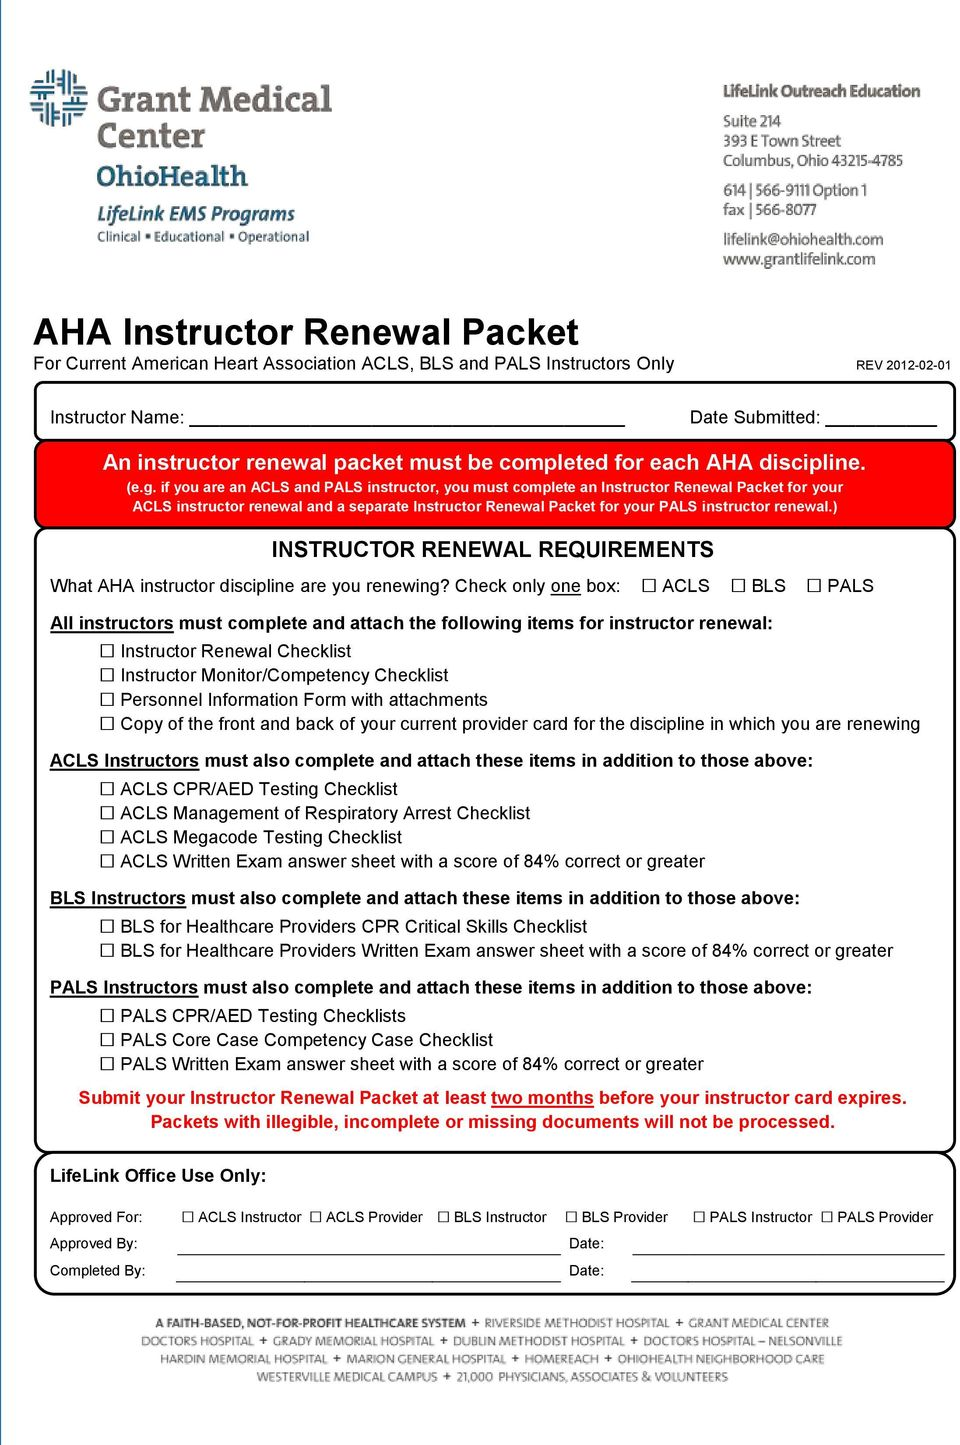 if you are an ACLS and PALS instructor, you must complete an Instructor  Renewal Packet